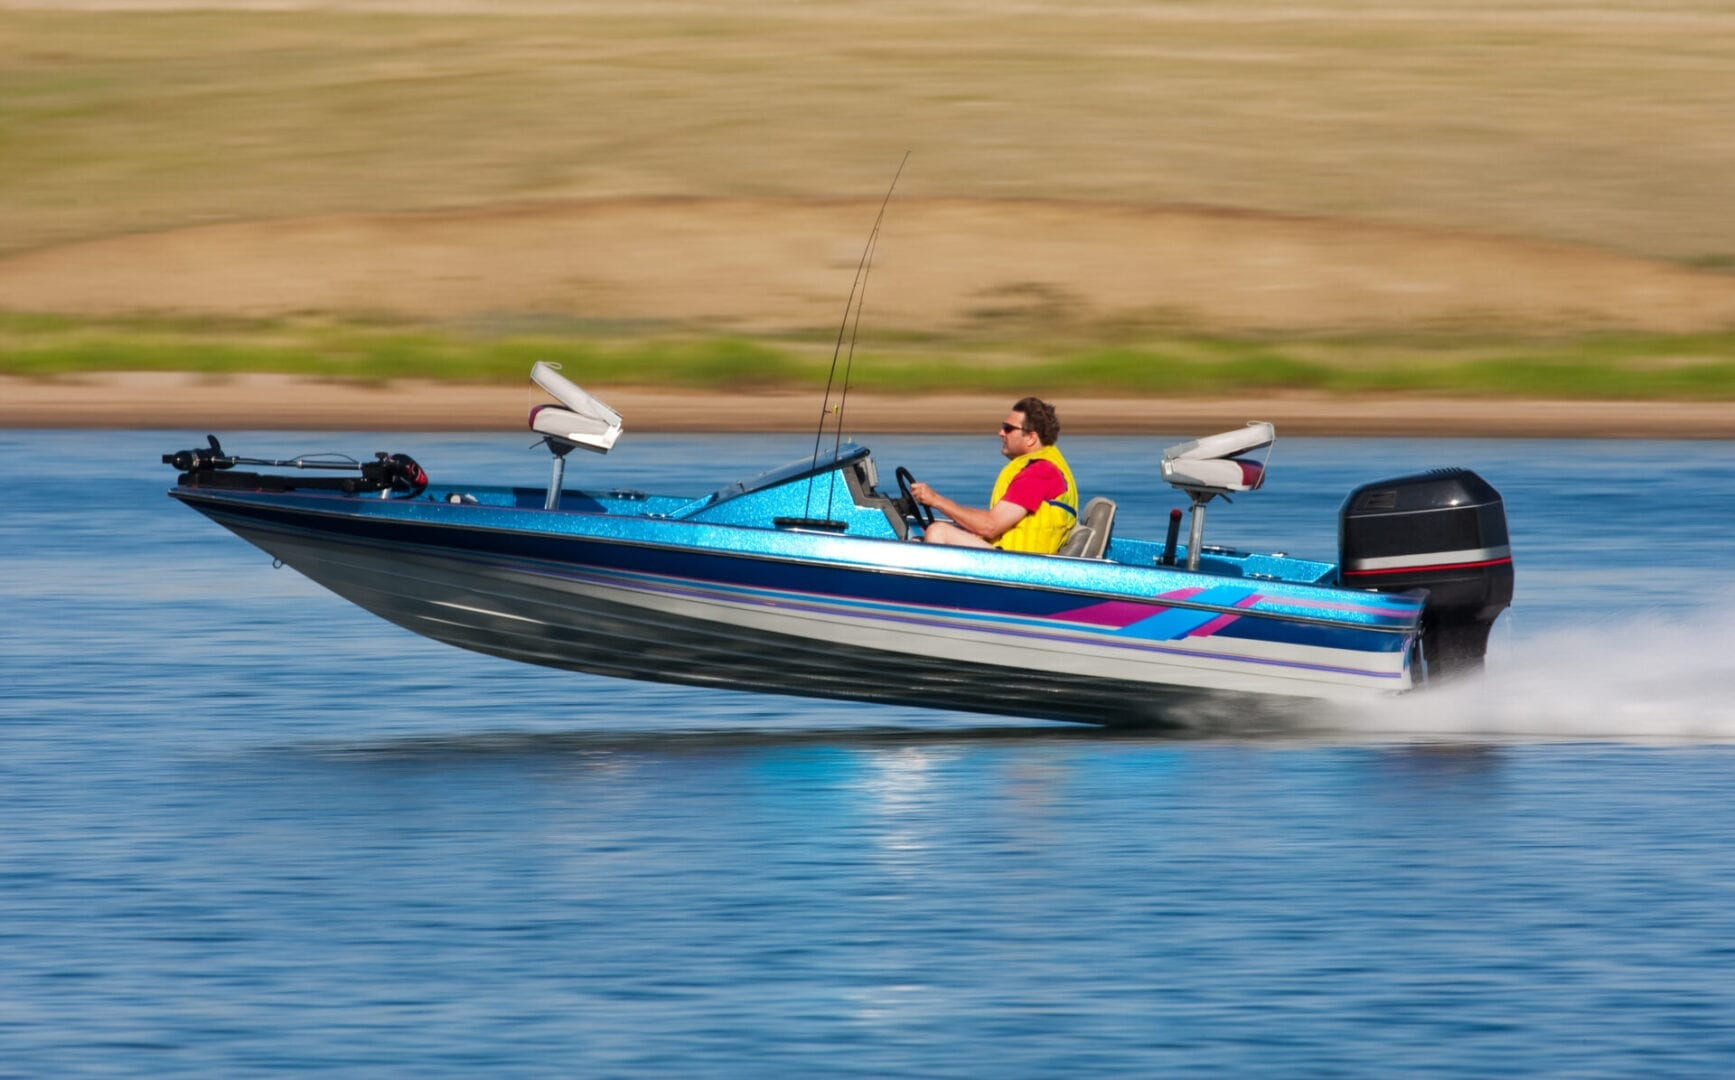 Man driving a fast boat with panned (motion blur) background